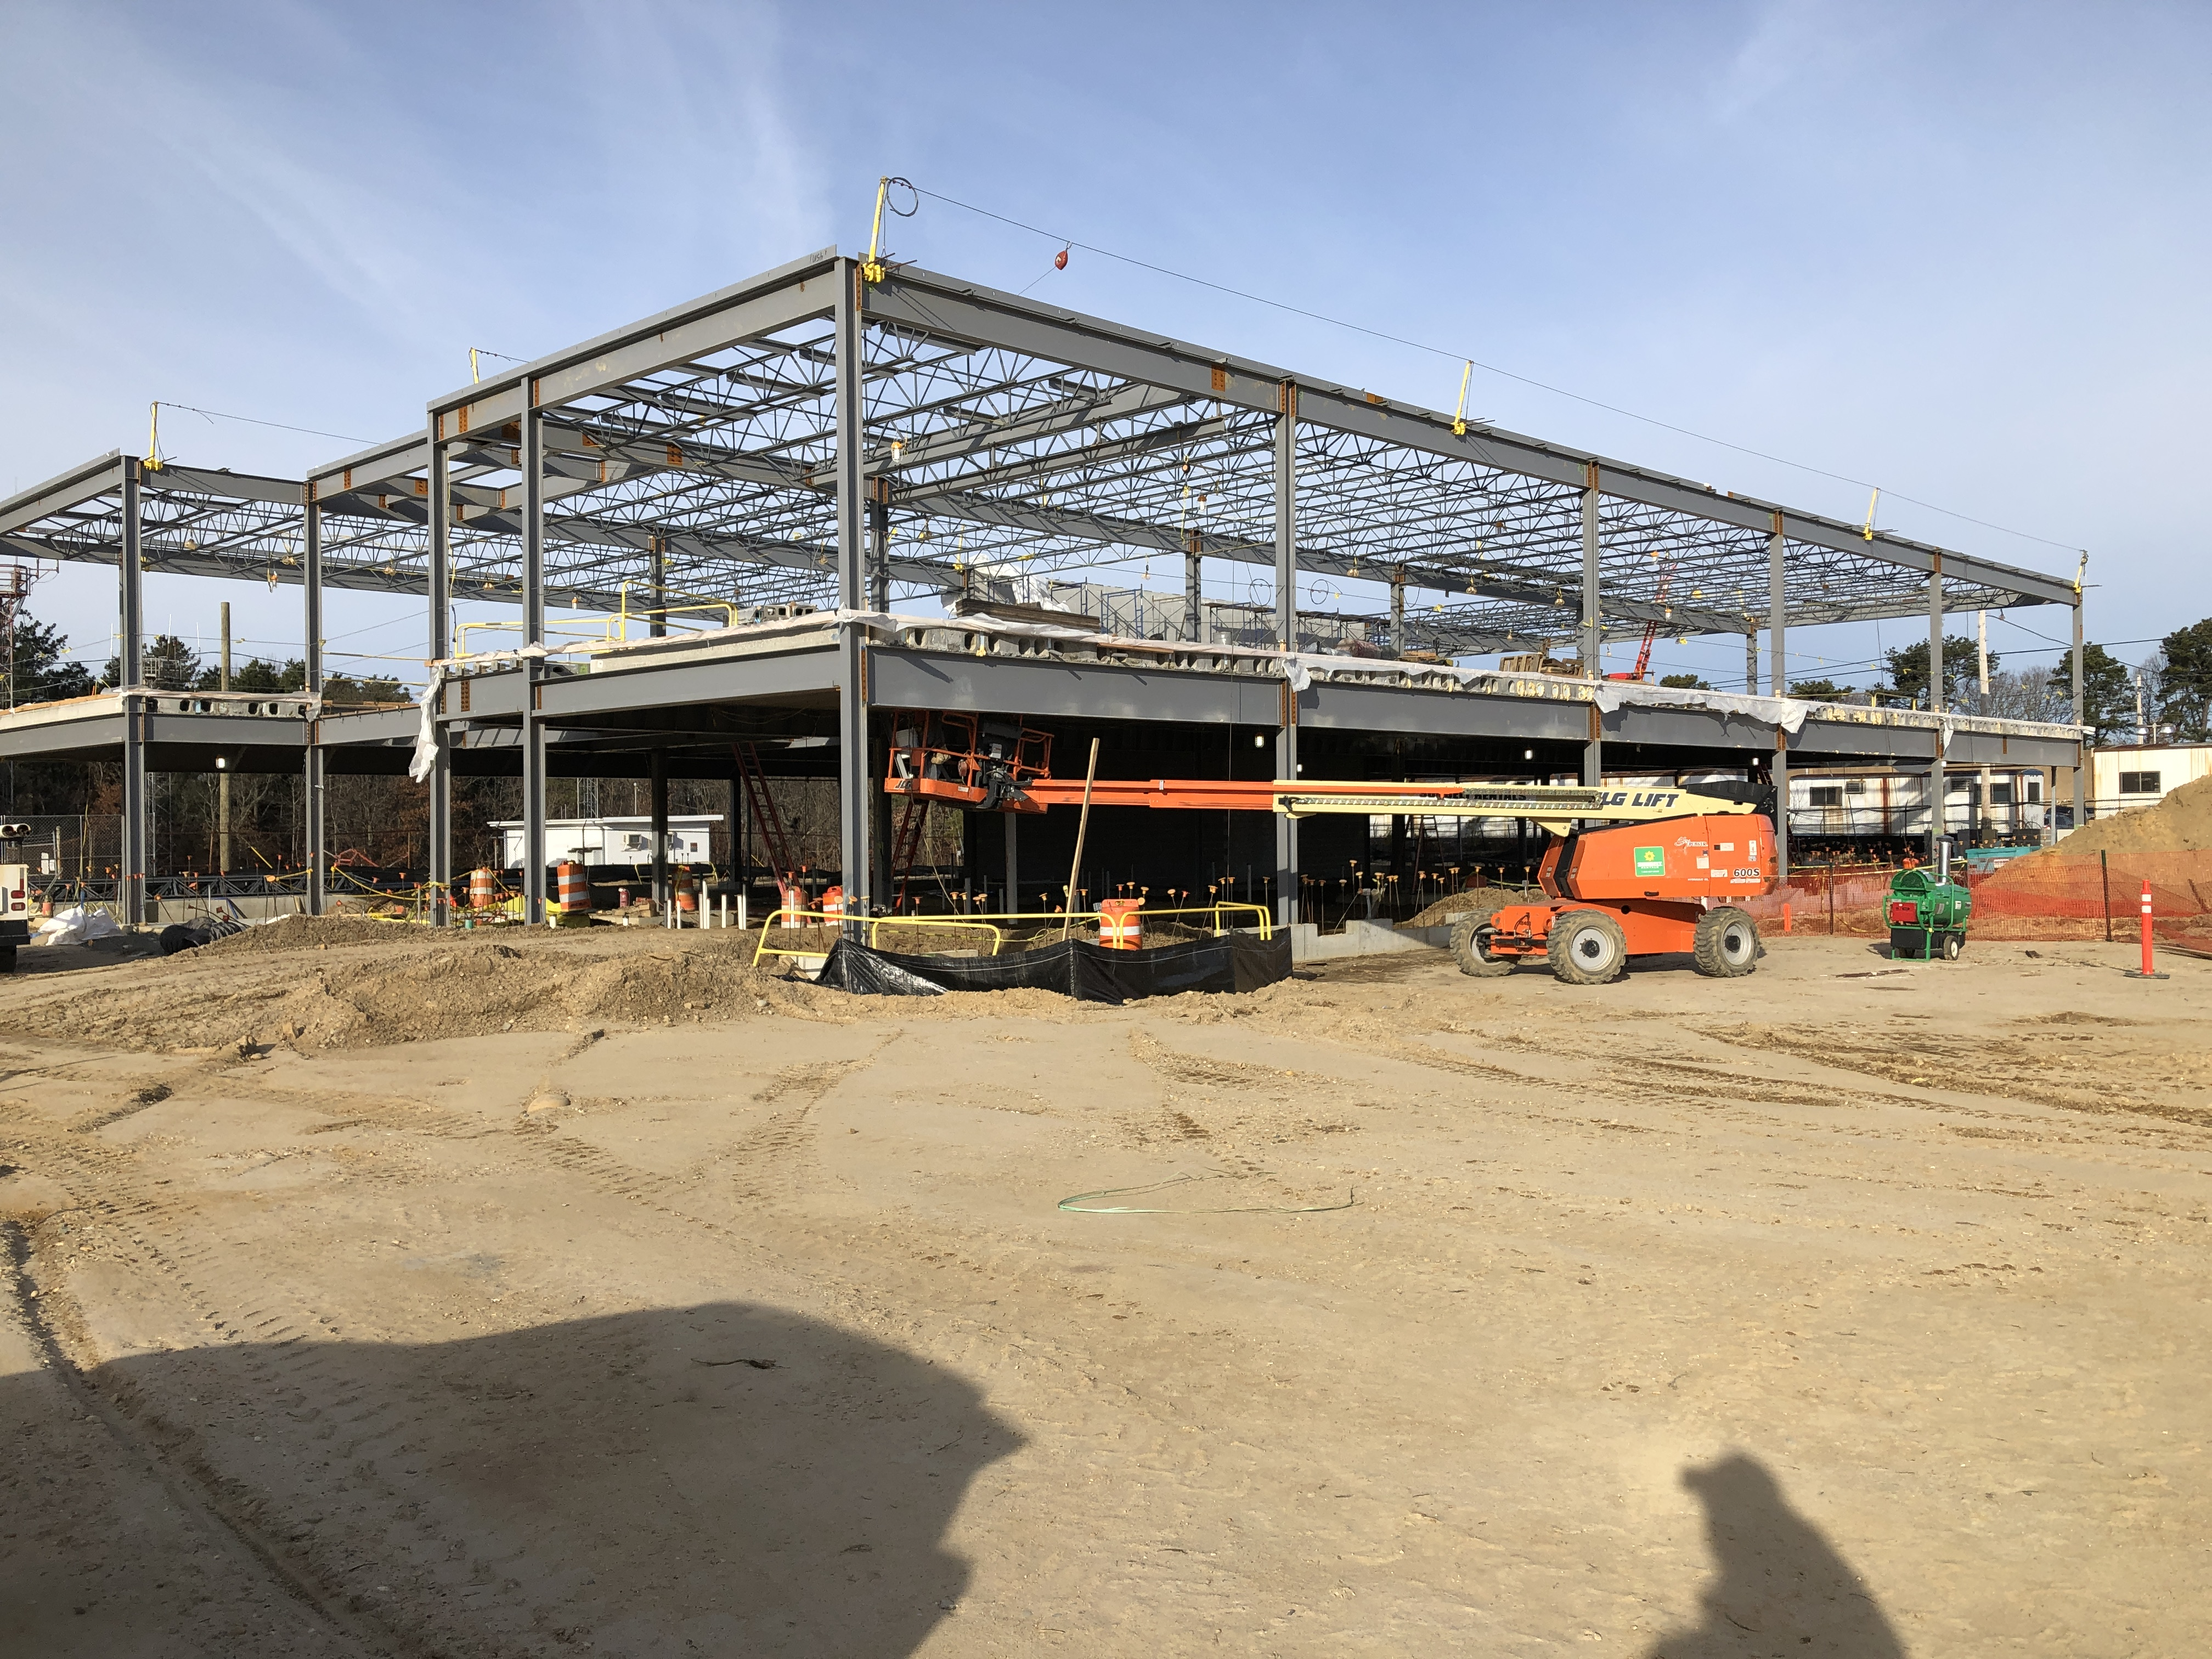 Mid Suffolk Yard - View of Employee Facility Looking NW 01-07-18